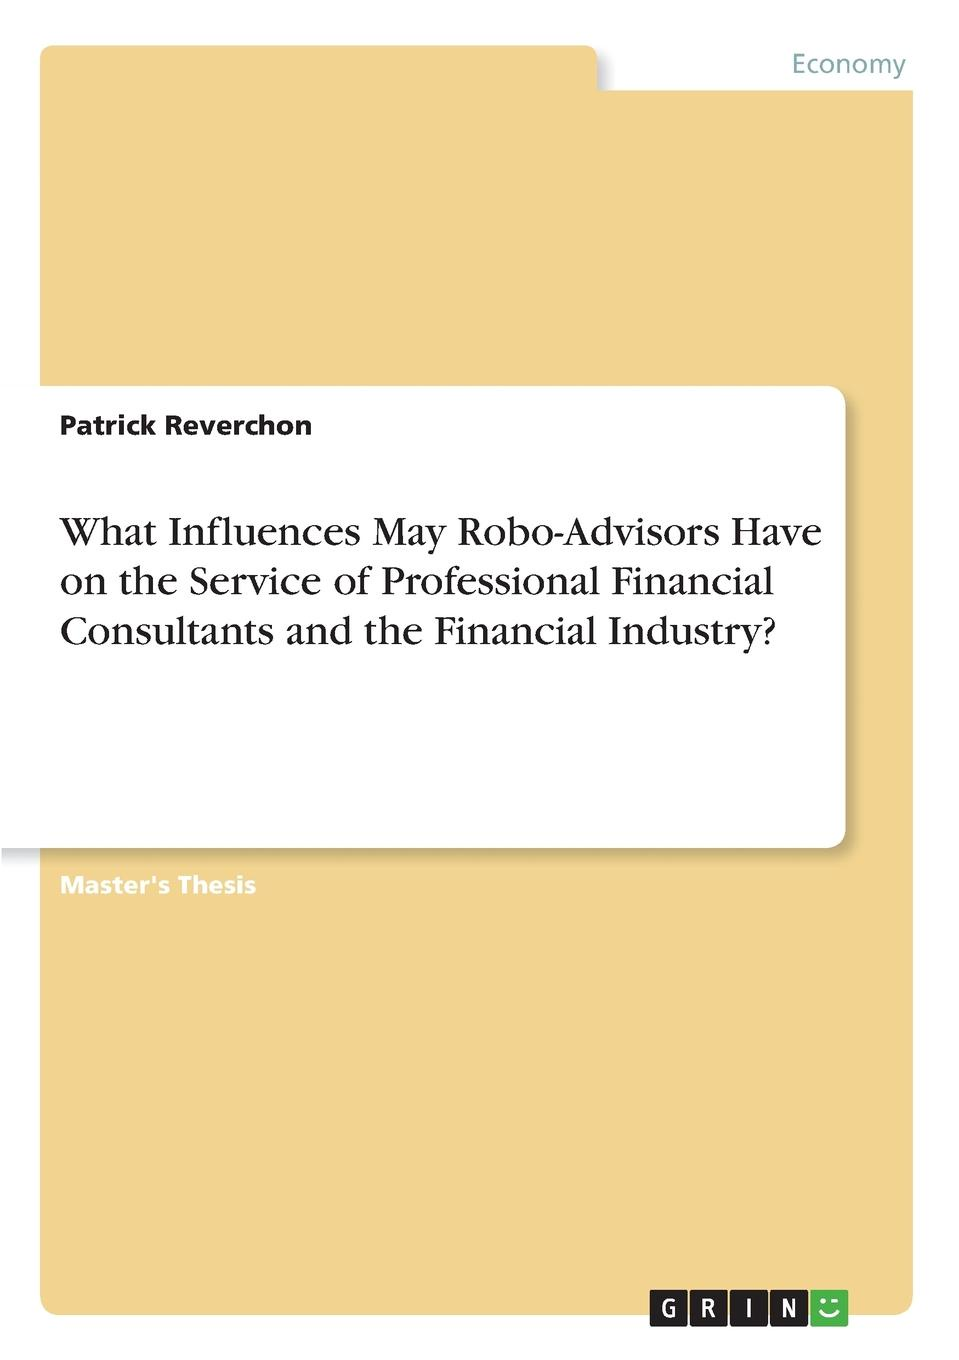 Patrick Reverchon What Influences May Robo-Advisors Have on the Service of Professional Financial Consultants and the Financial Industry. financial english